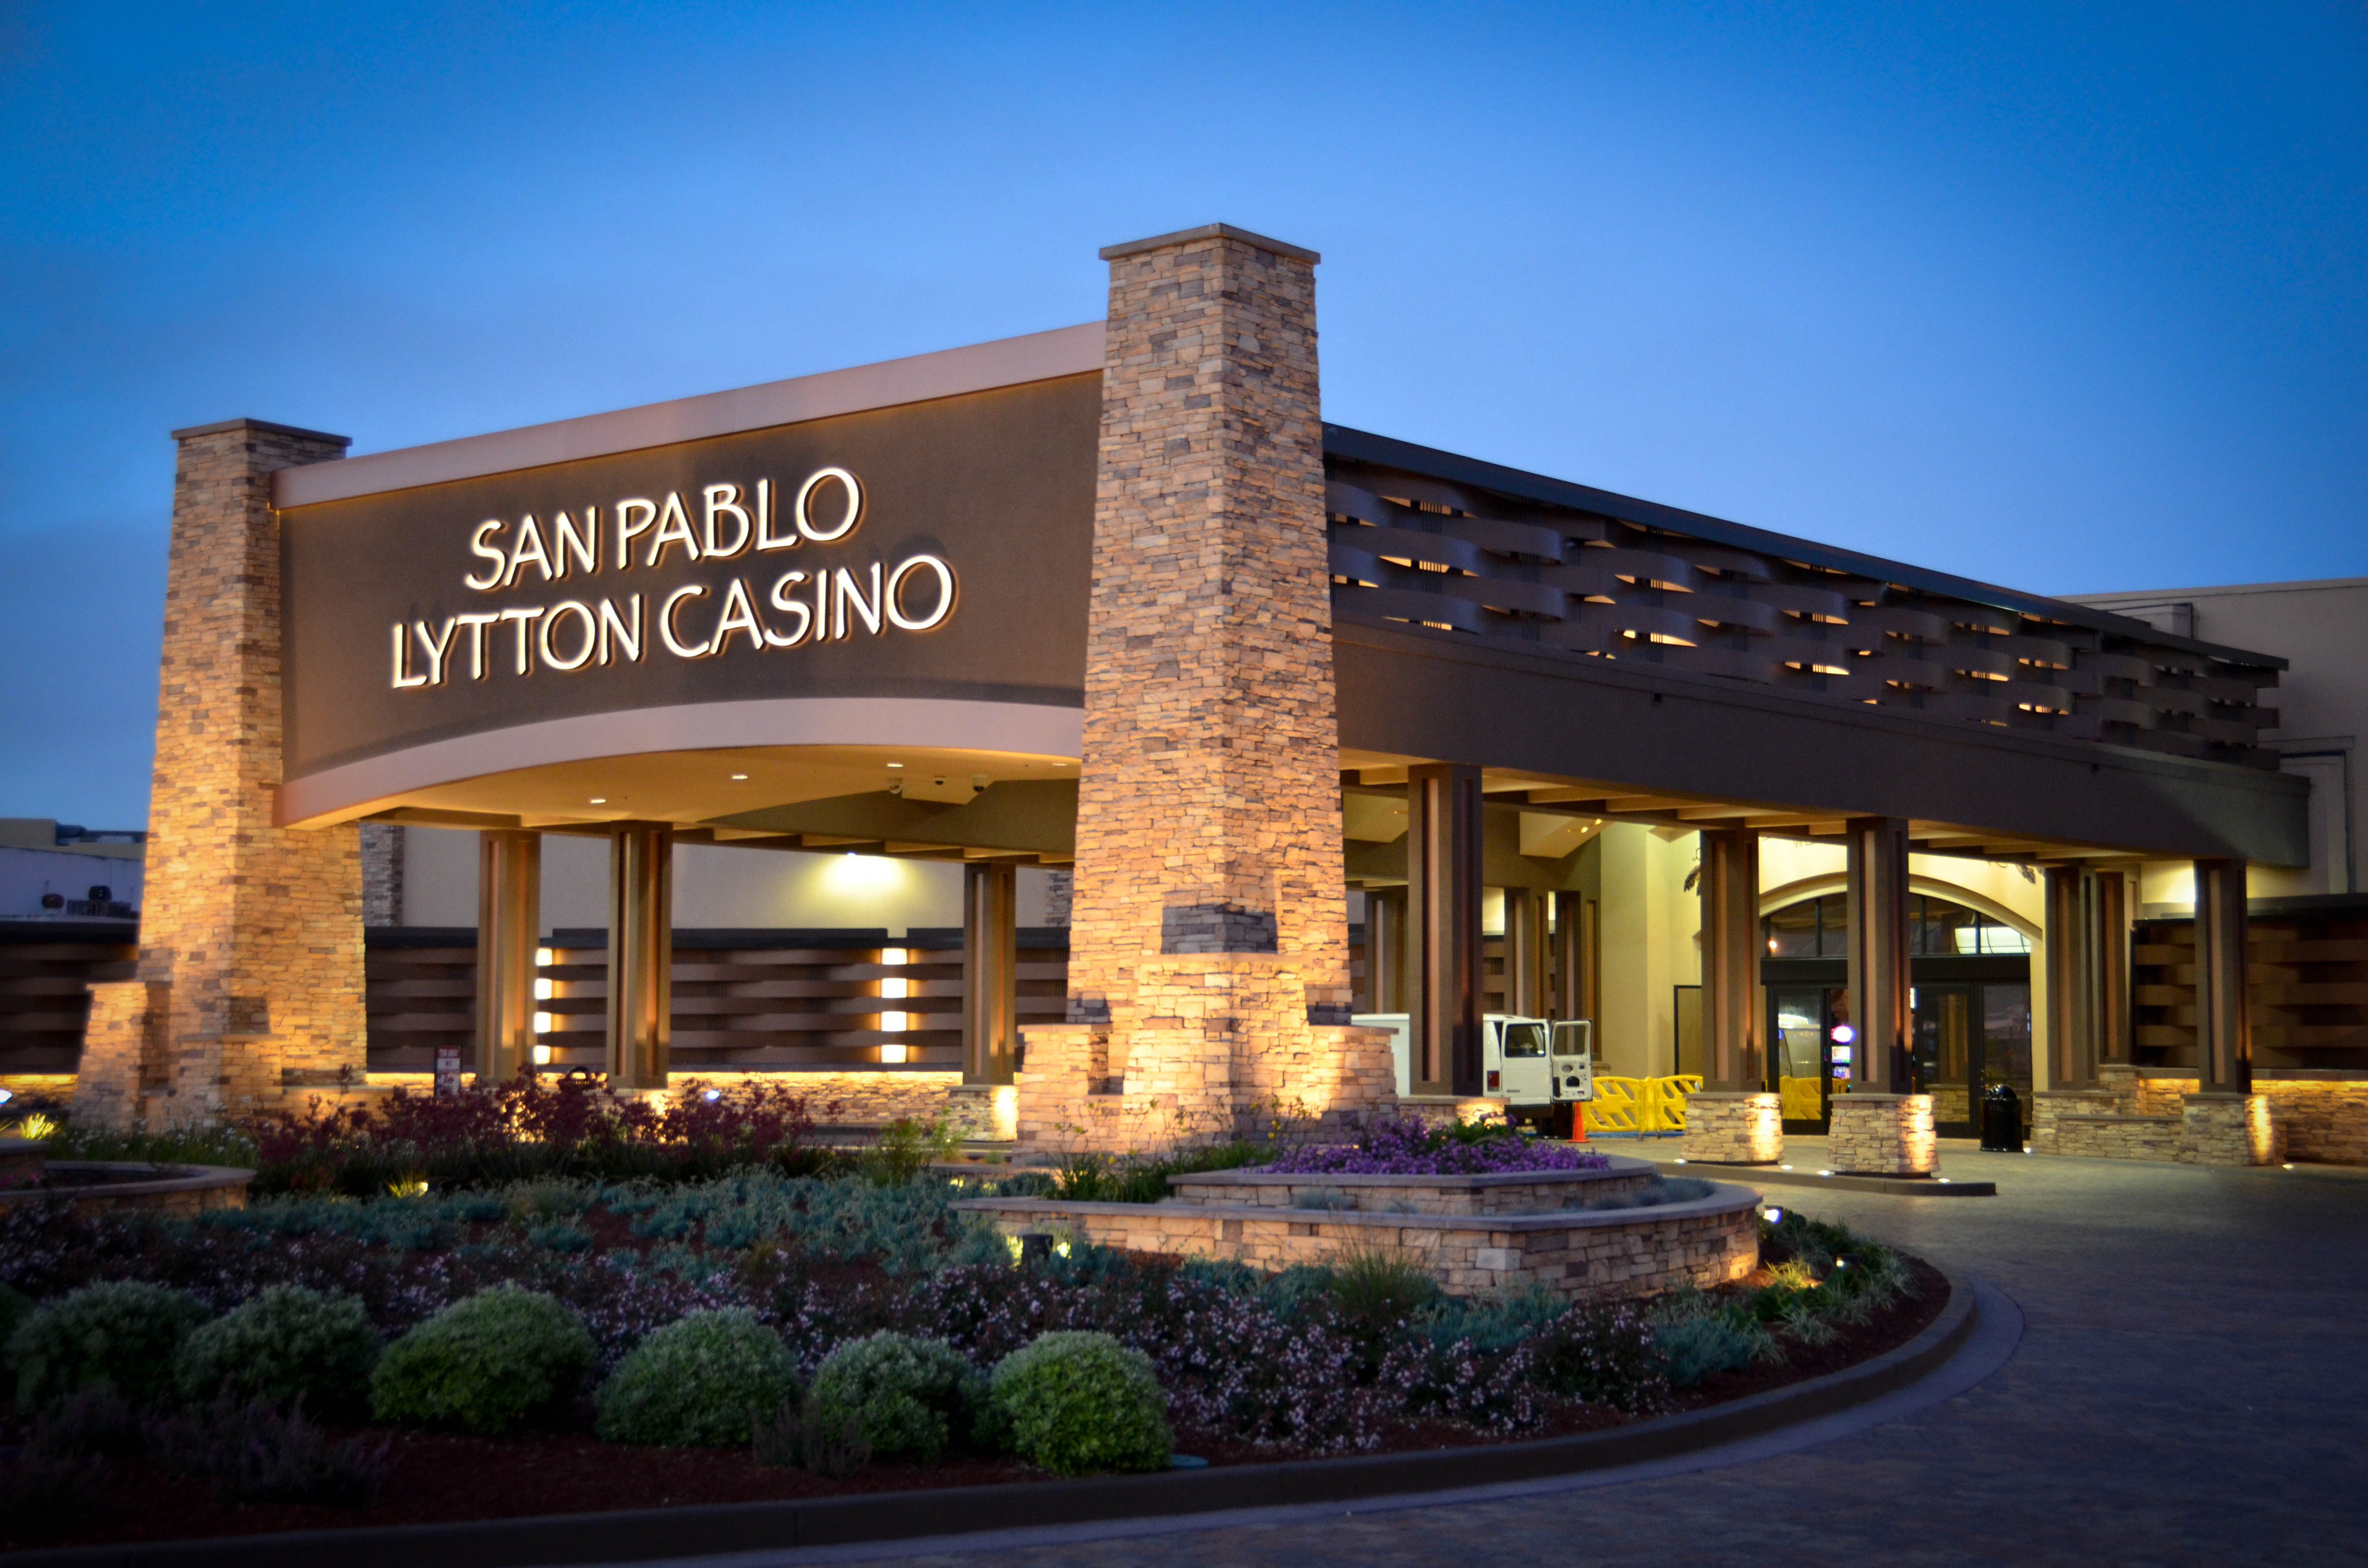 The San Pablo Lytton Casino is owned and operated by the Lytton Band of Pomo Indians, originally from the Lytton Rancheria.What began as a card room has expanded to a full-fledged casino with Class II Gaming Machines.We Treat Our Guests and Each Other With Kindness, Dignity and Respect.Exciting Opportunities in a Fun Atmosphere!